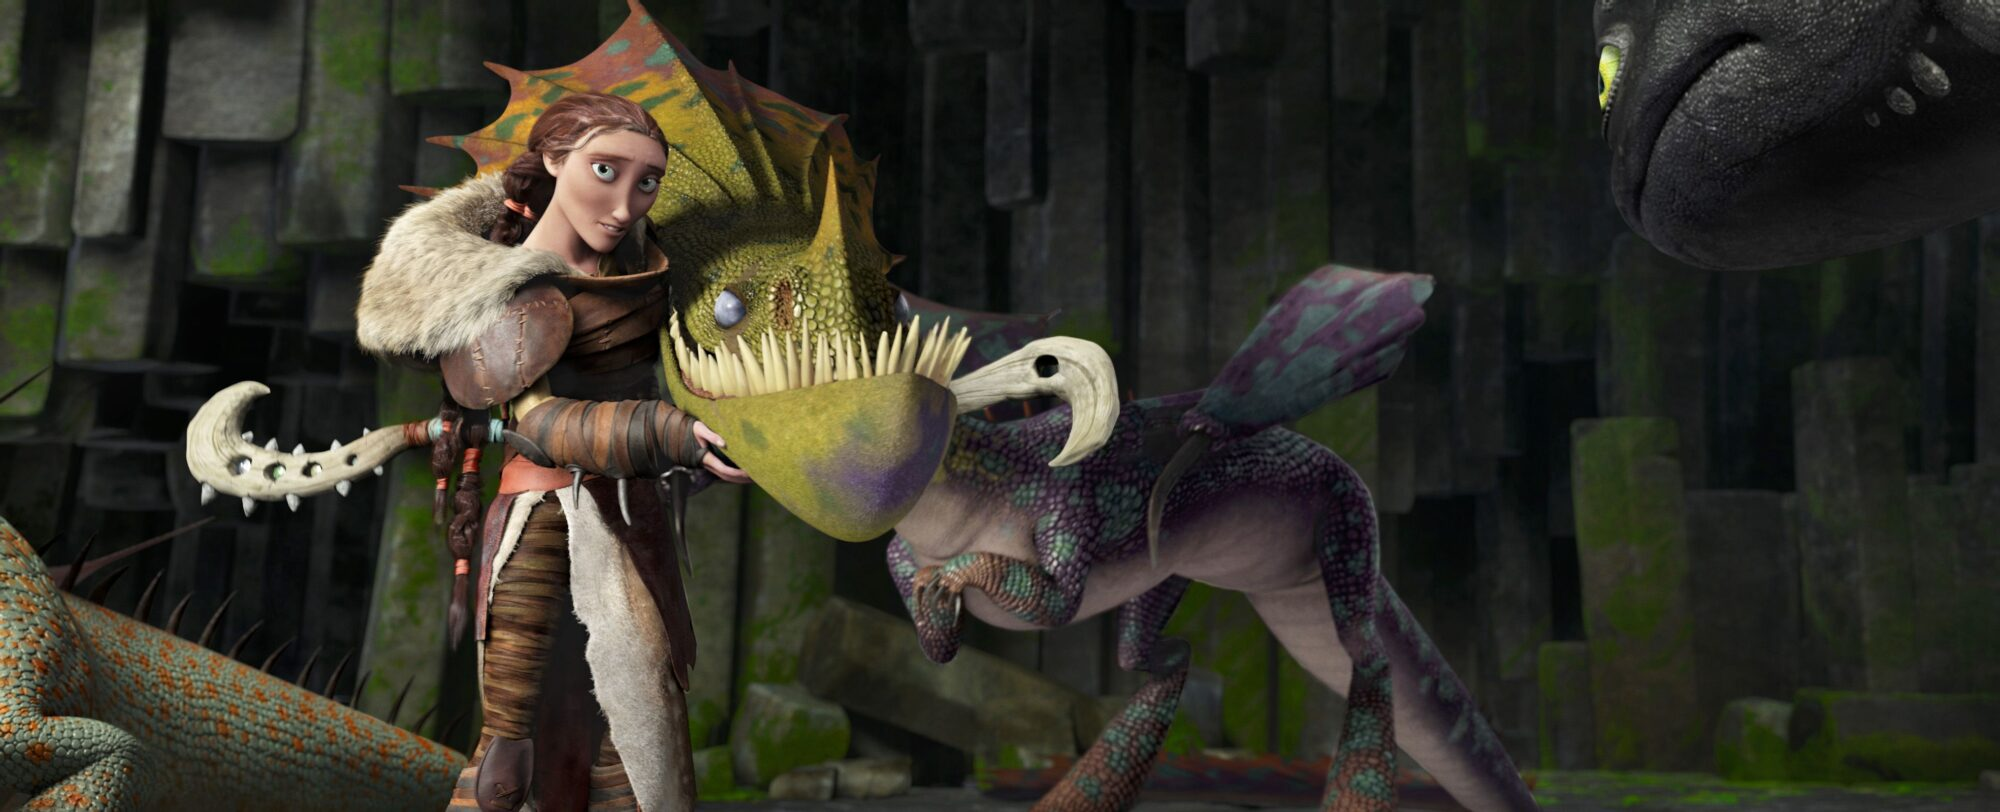 Review: How to Train Your Dragon 2 - Slant Magazine